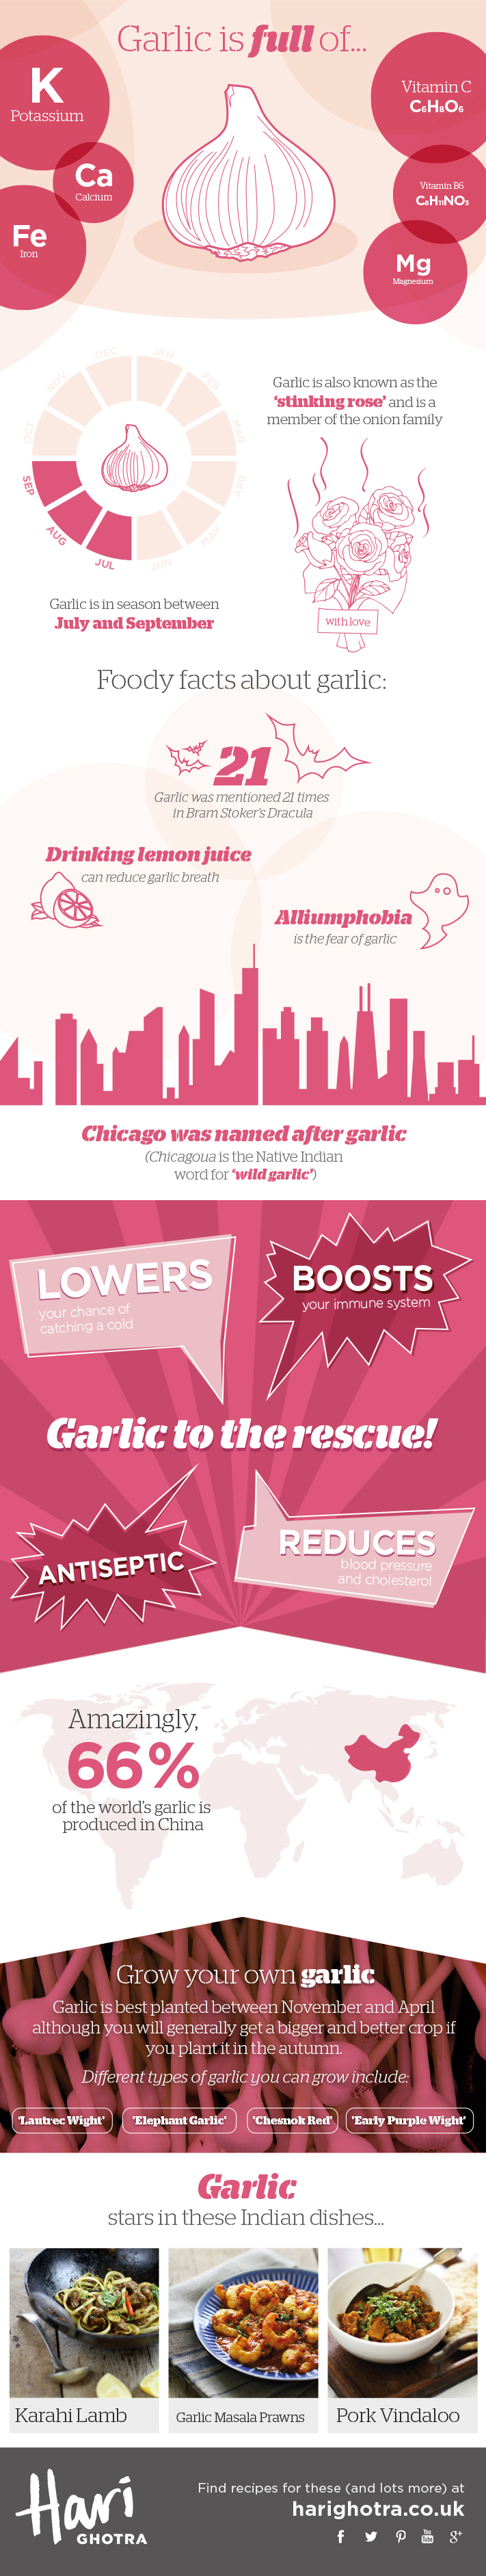 Garlic Infographic showing the health benefits of Garlic